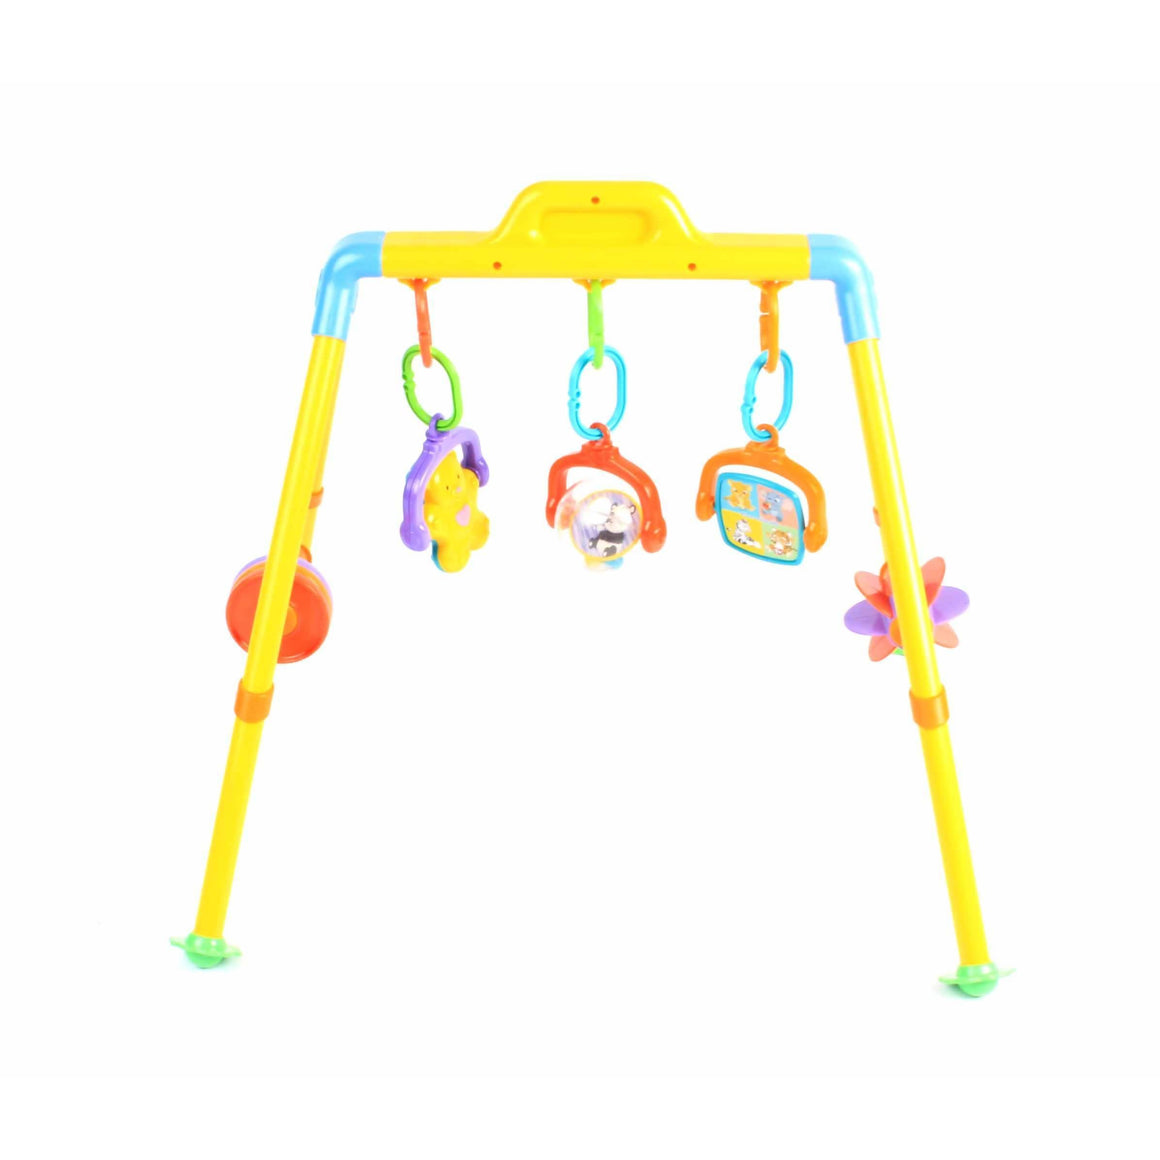 Garanimals Stay & Play Activity GYM - Cuddlecircle